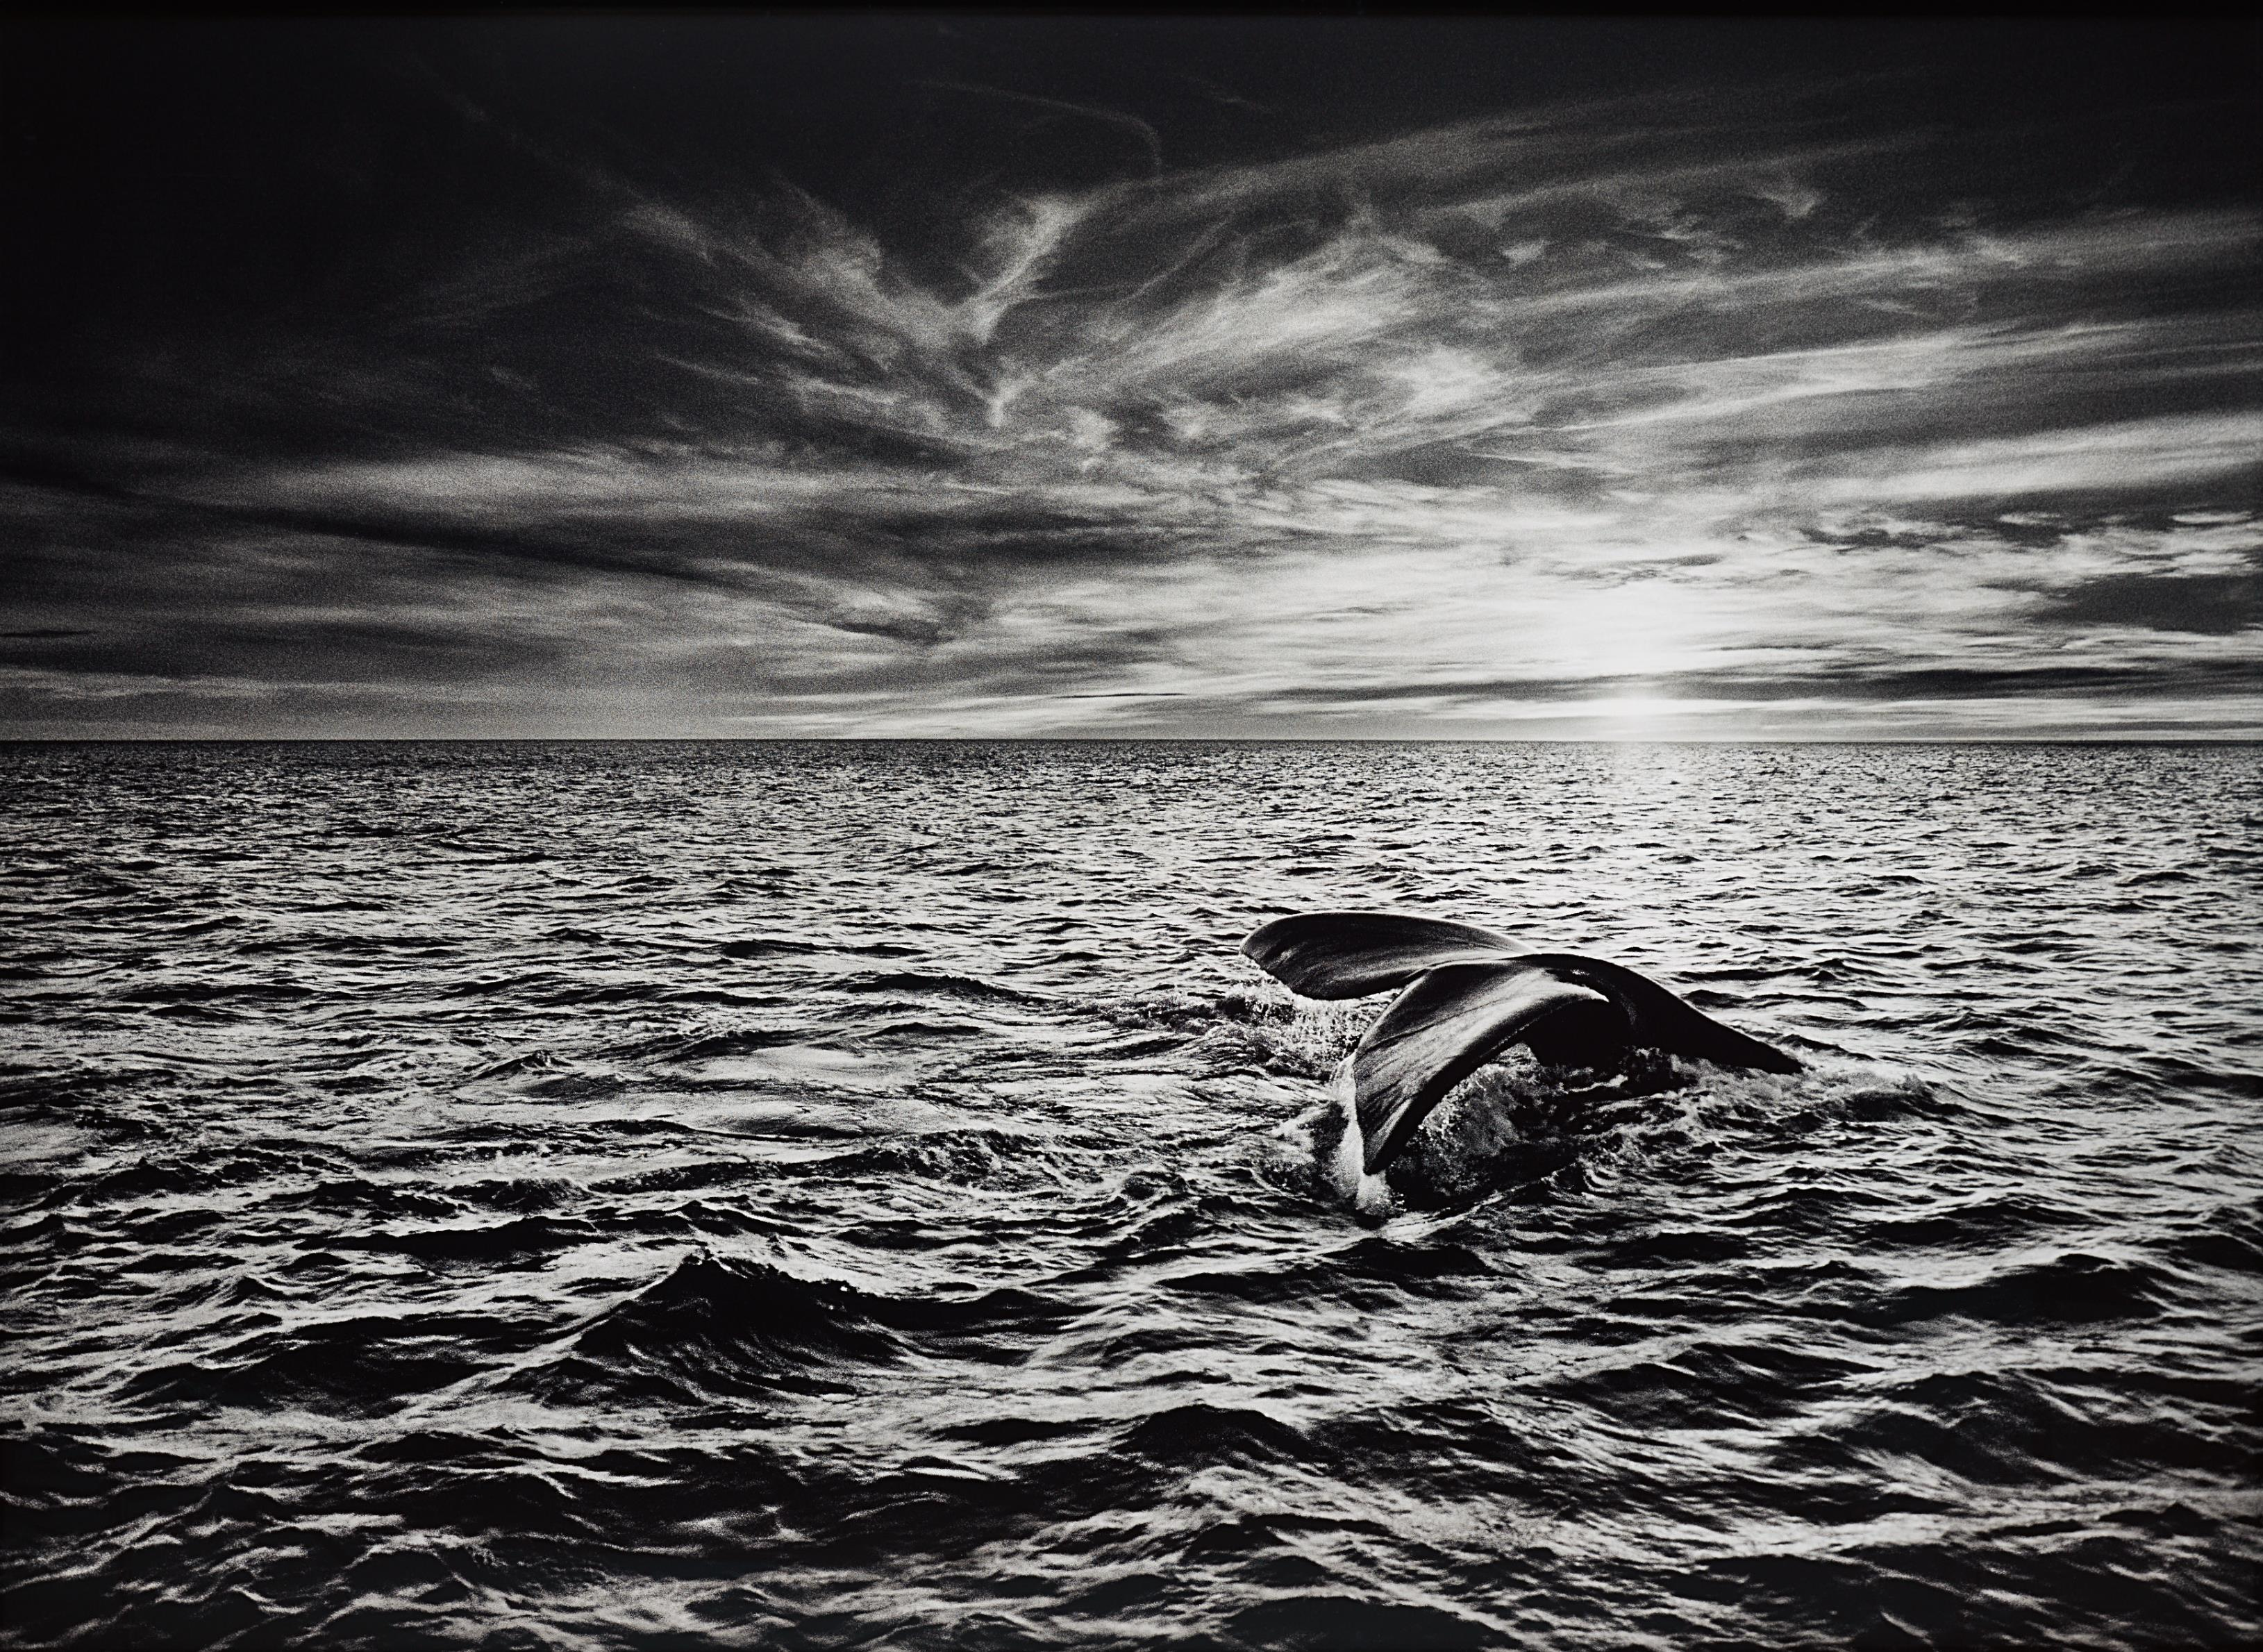 Sebastiao Salgado-Southern Right Whale, Navigating In The Golfo Nuevo, Valdés Peninsula, Argentina-2005